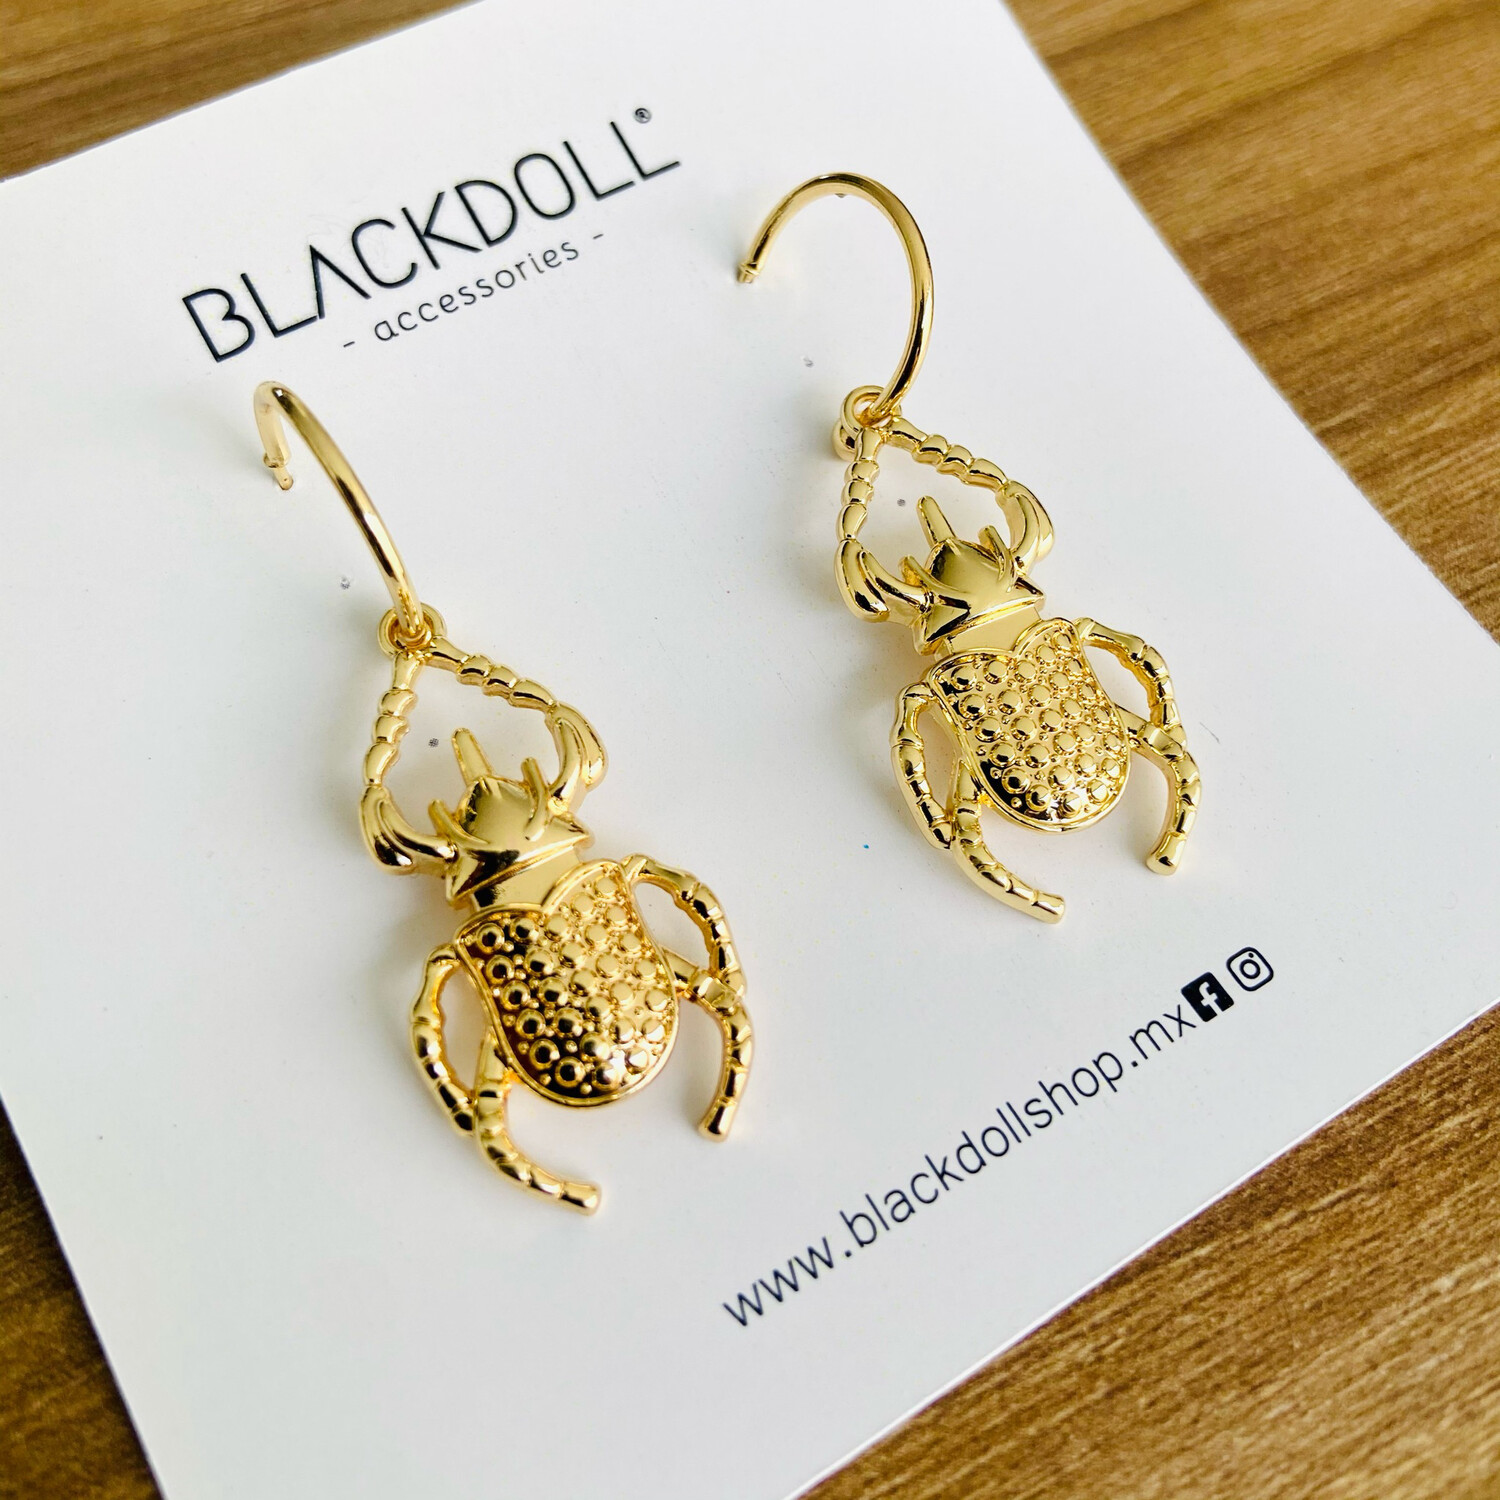 Insect Earrings - BLACKDOLL ACCESSORIES